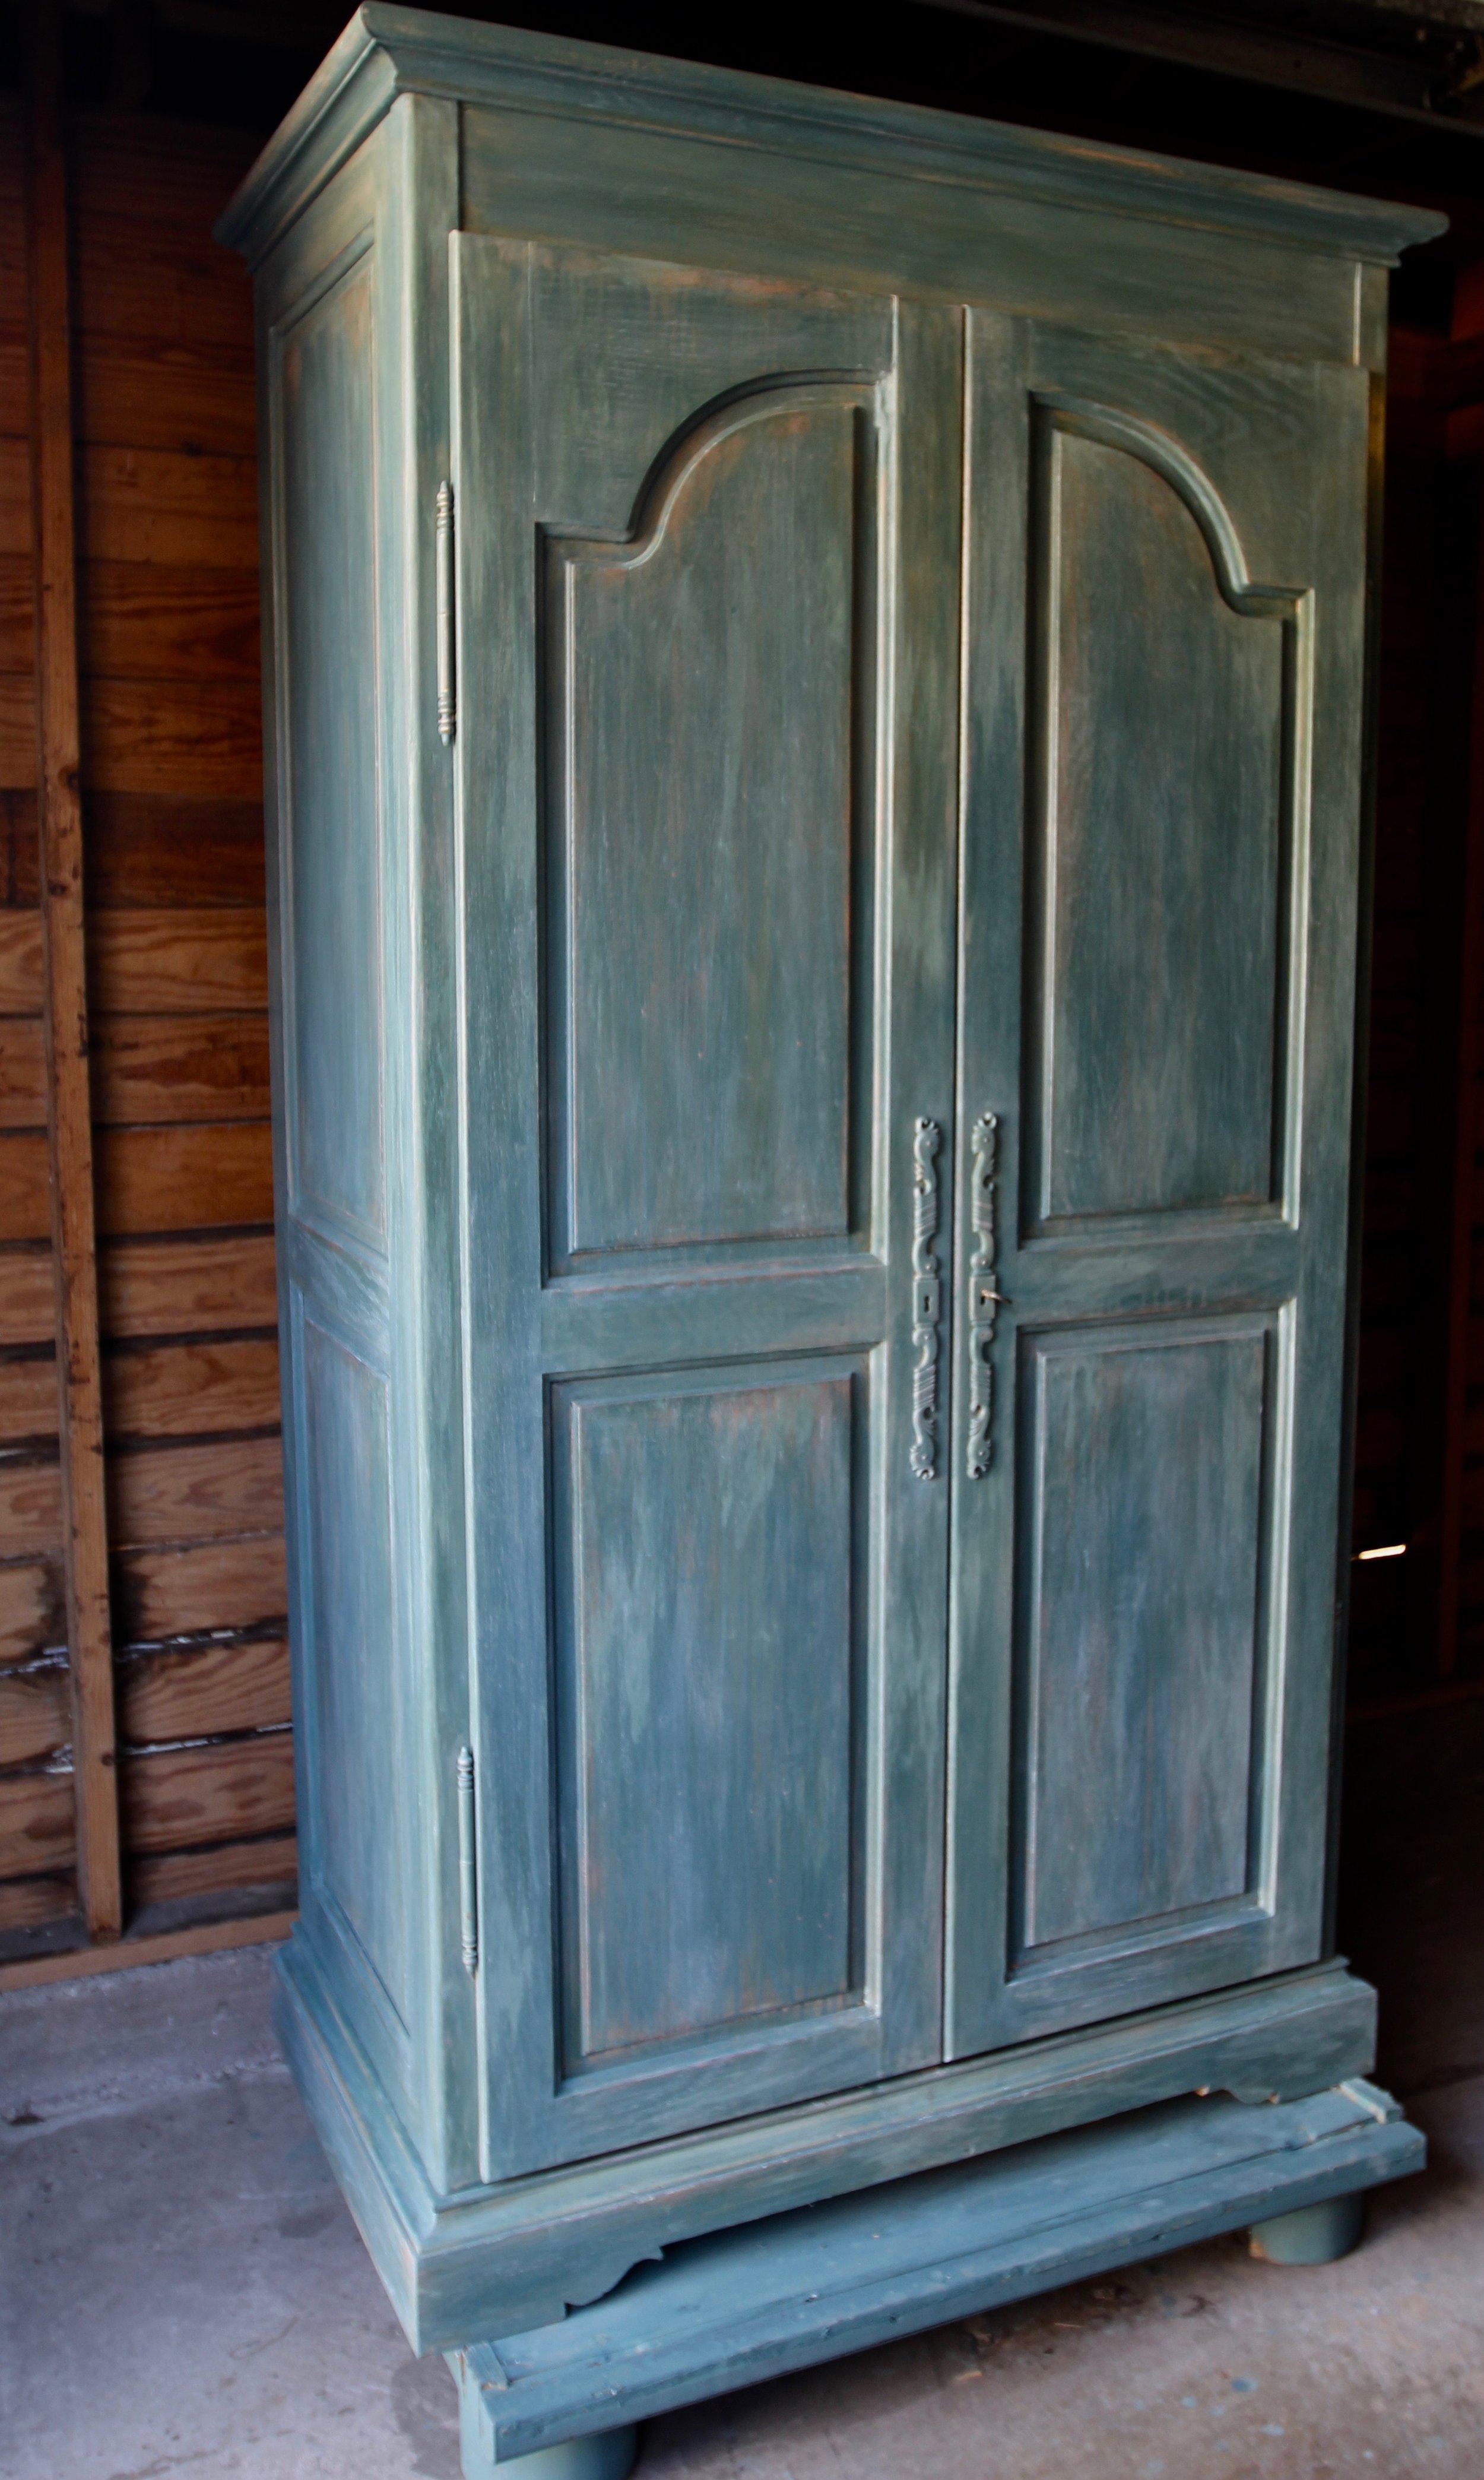 jo-torrijos-a-simpler-design-painted-furniture-dallas-texas-layered-paint-technique-green-armoire-3.jpg